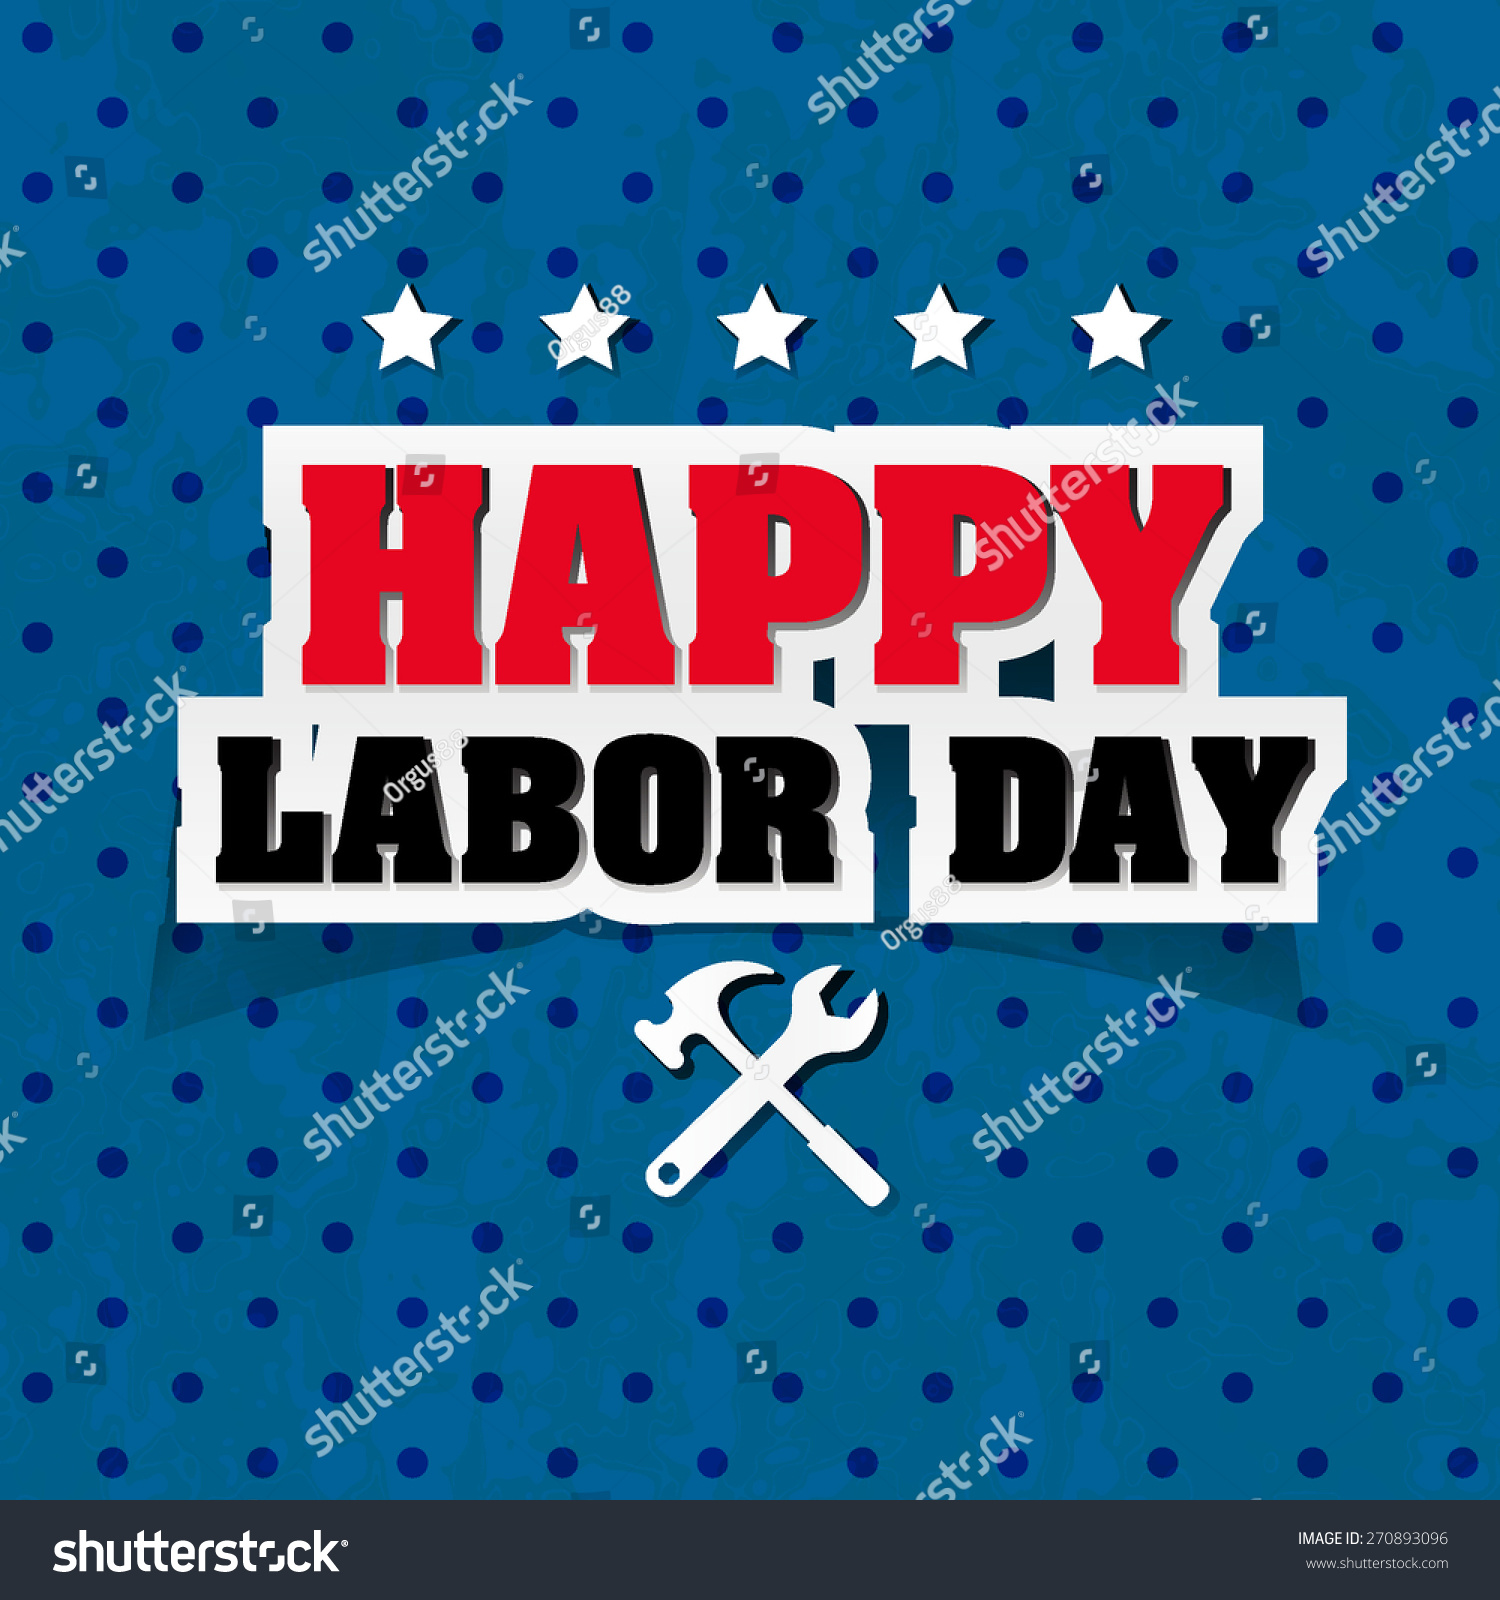 Happy Labor Day Greetings Cards Typographical Stock Vector Royalty